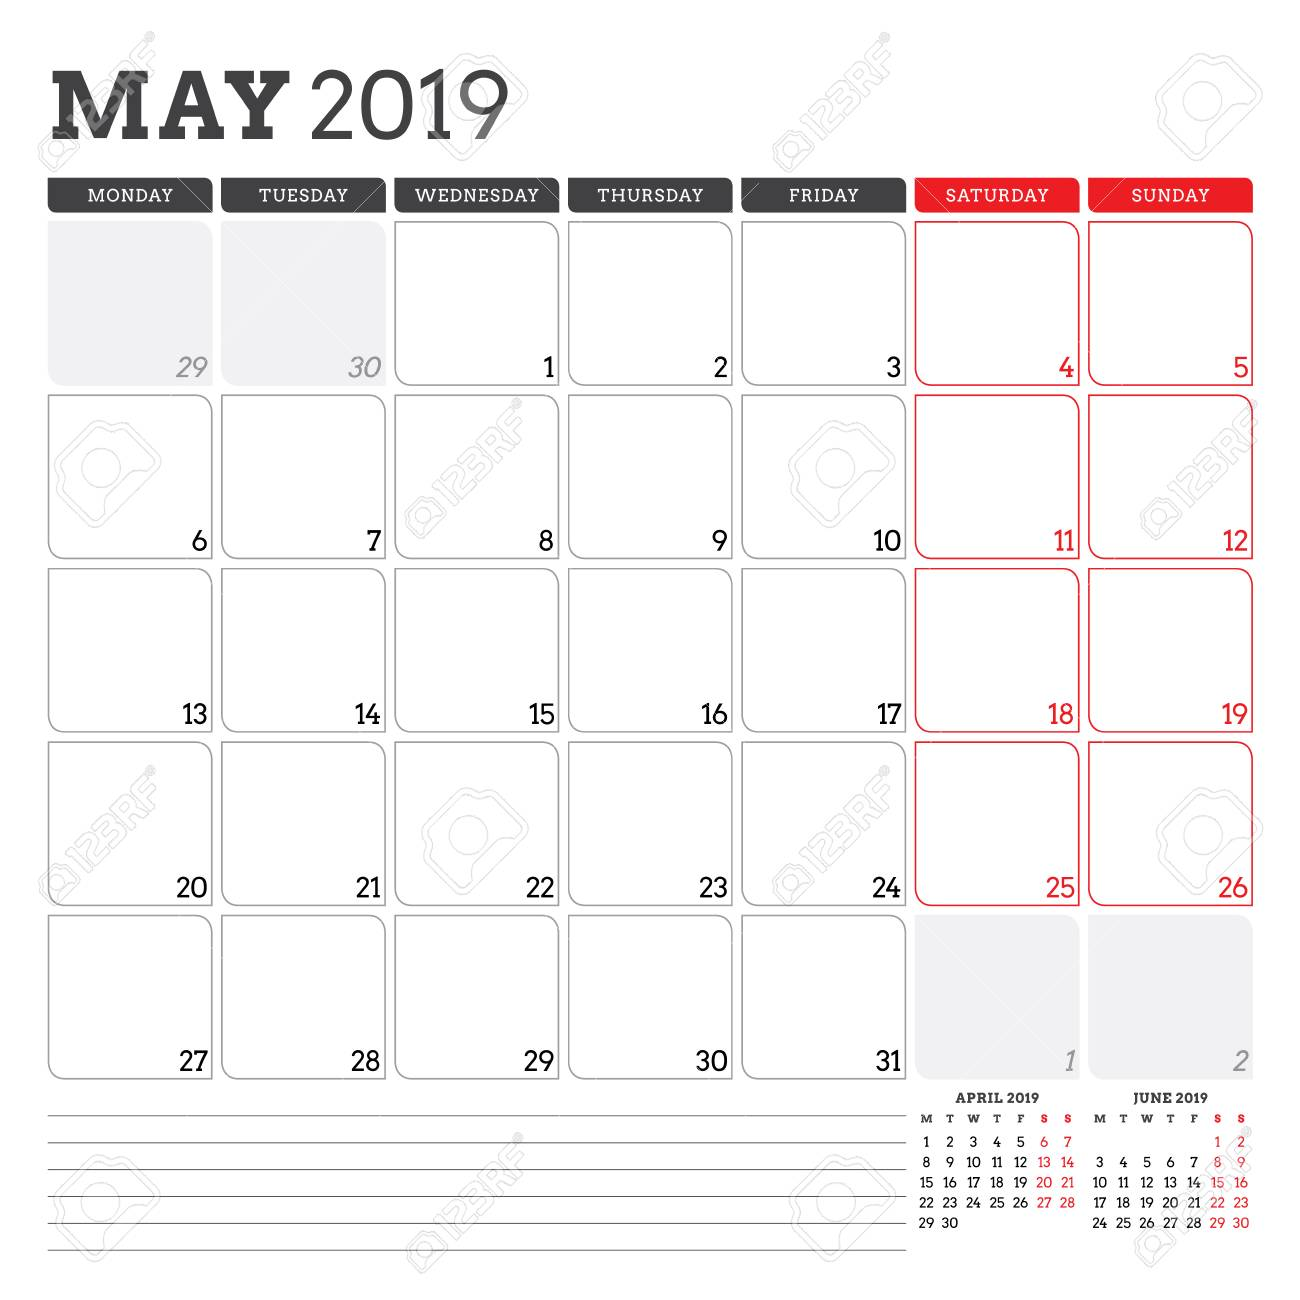 Calendar Planner For May 2019 Week Starts On Monday Printable